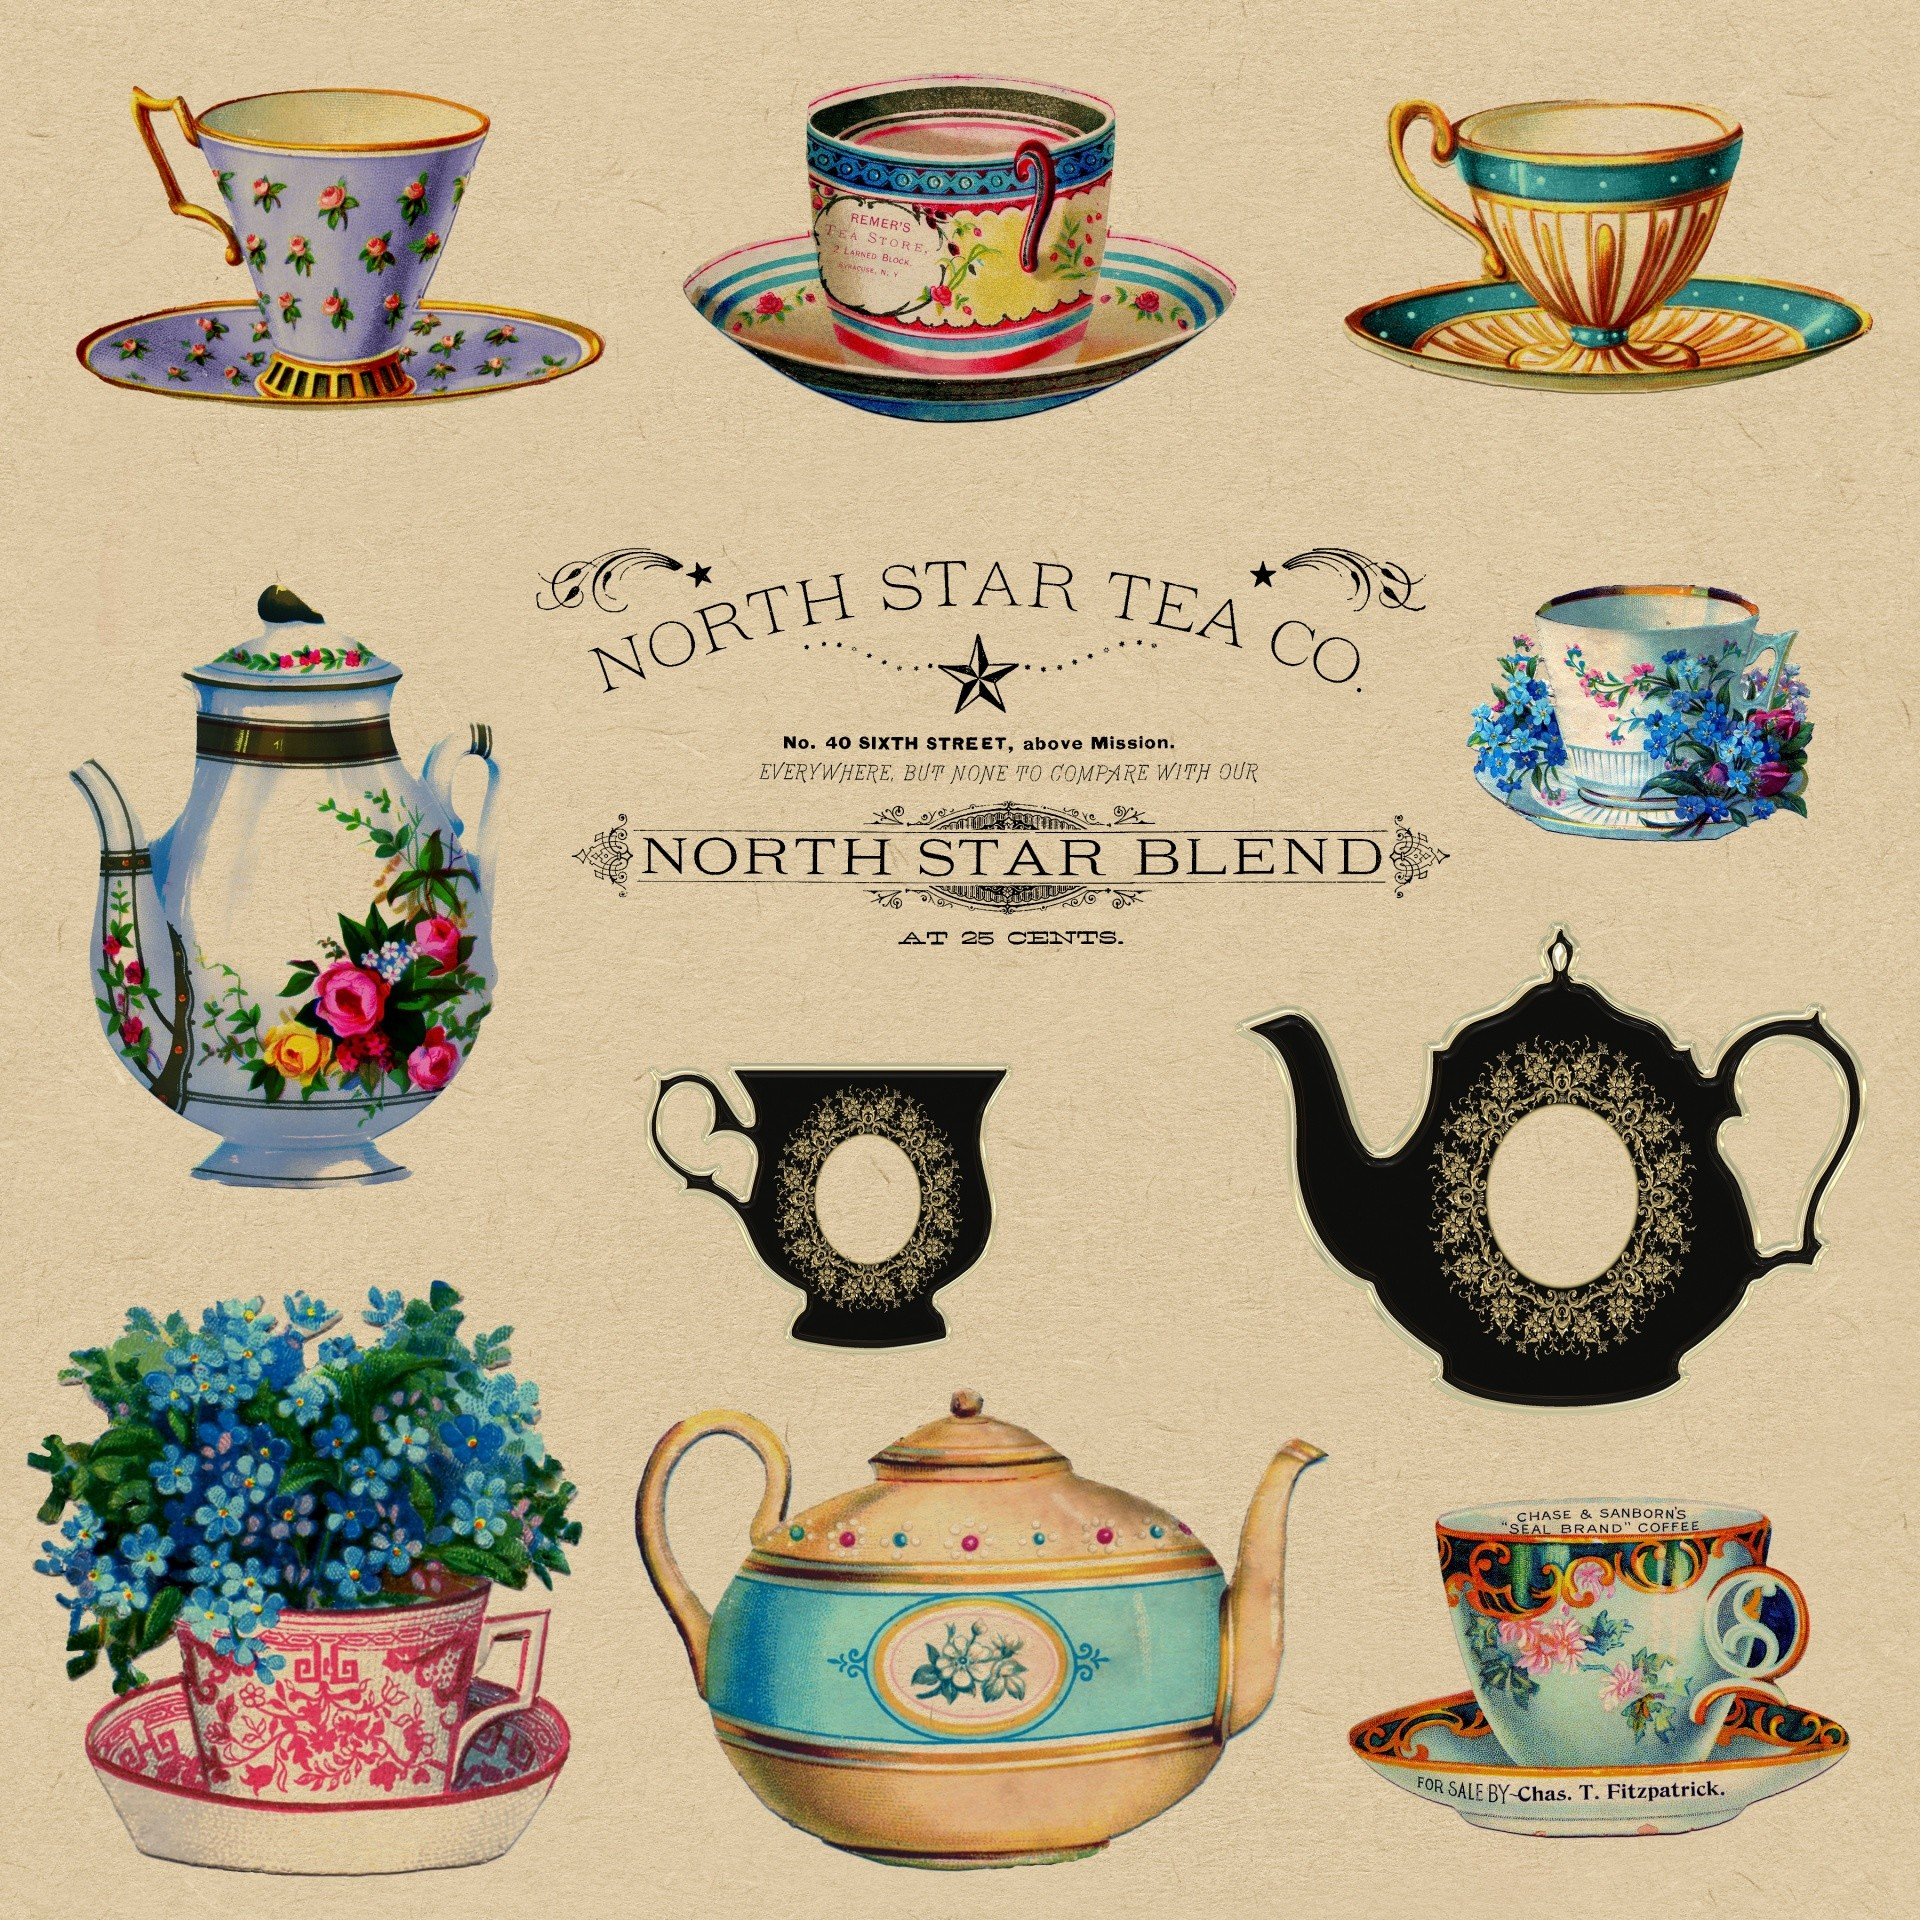 1920x1920 Teacups Vintage Wallpaper Adverts